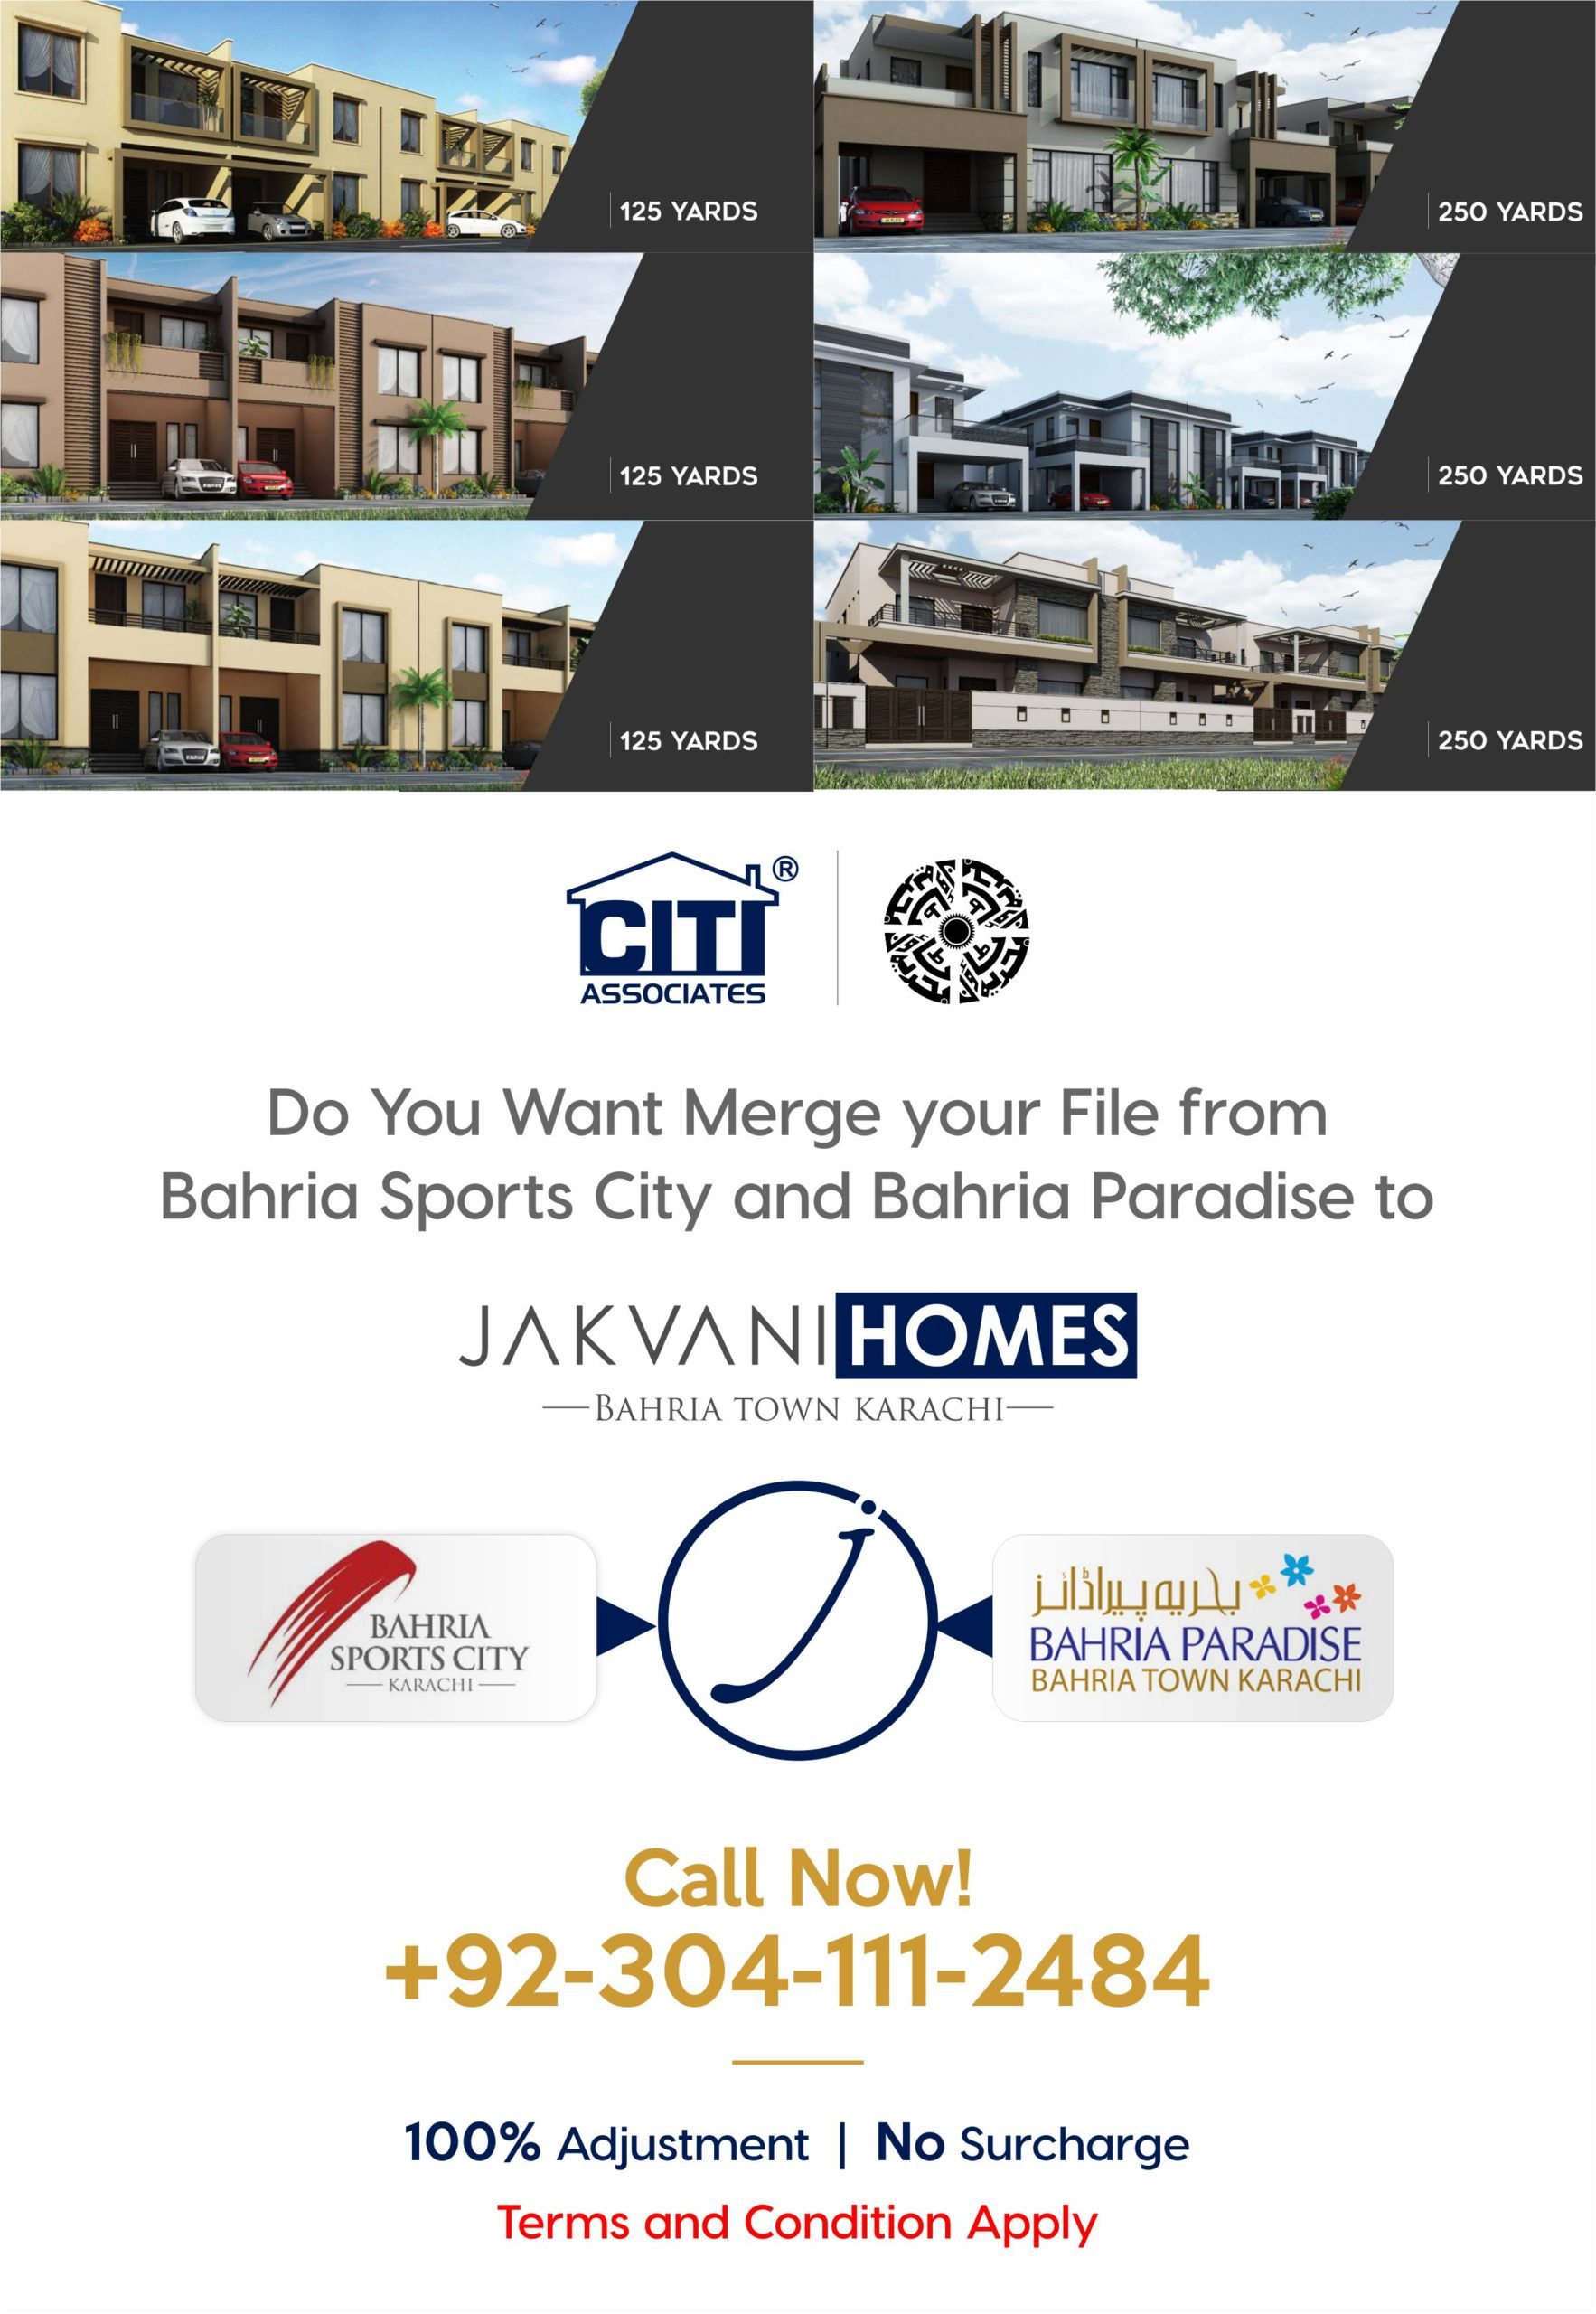 Merge your Bahria Sports City & Bahria Paradise Files into Jakvani Homes